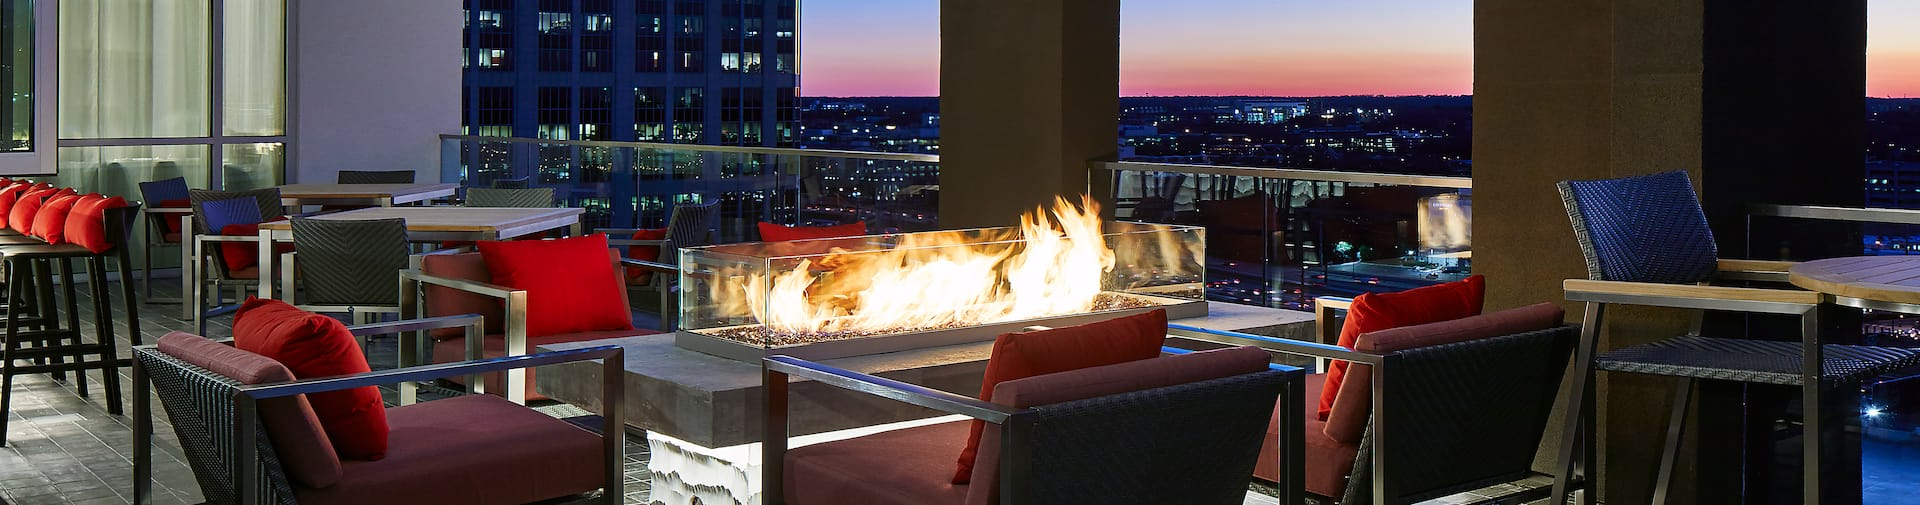 a fire pit and seating on a terrace with skyline views